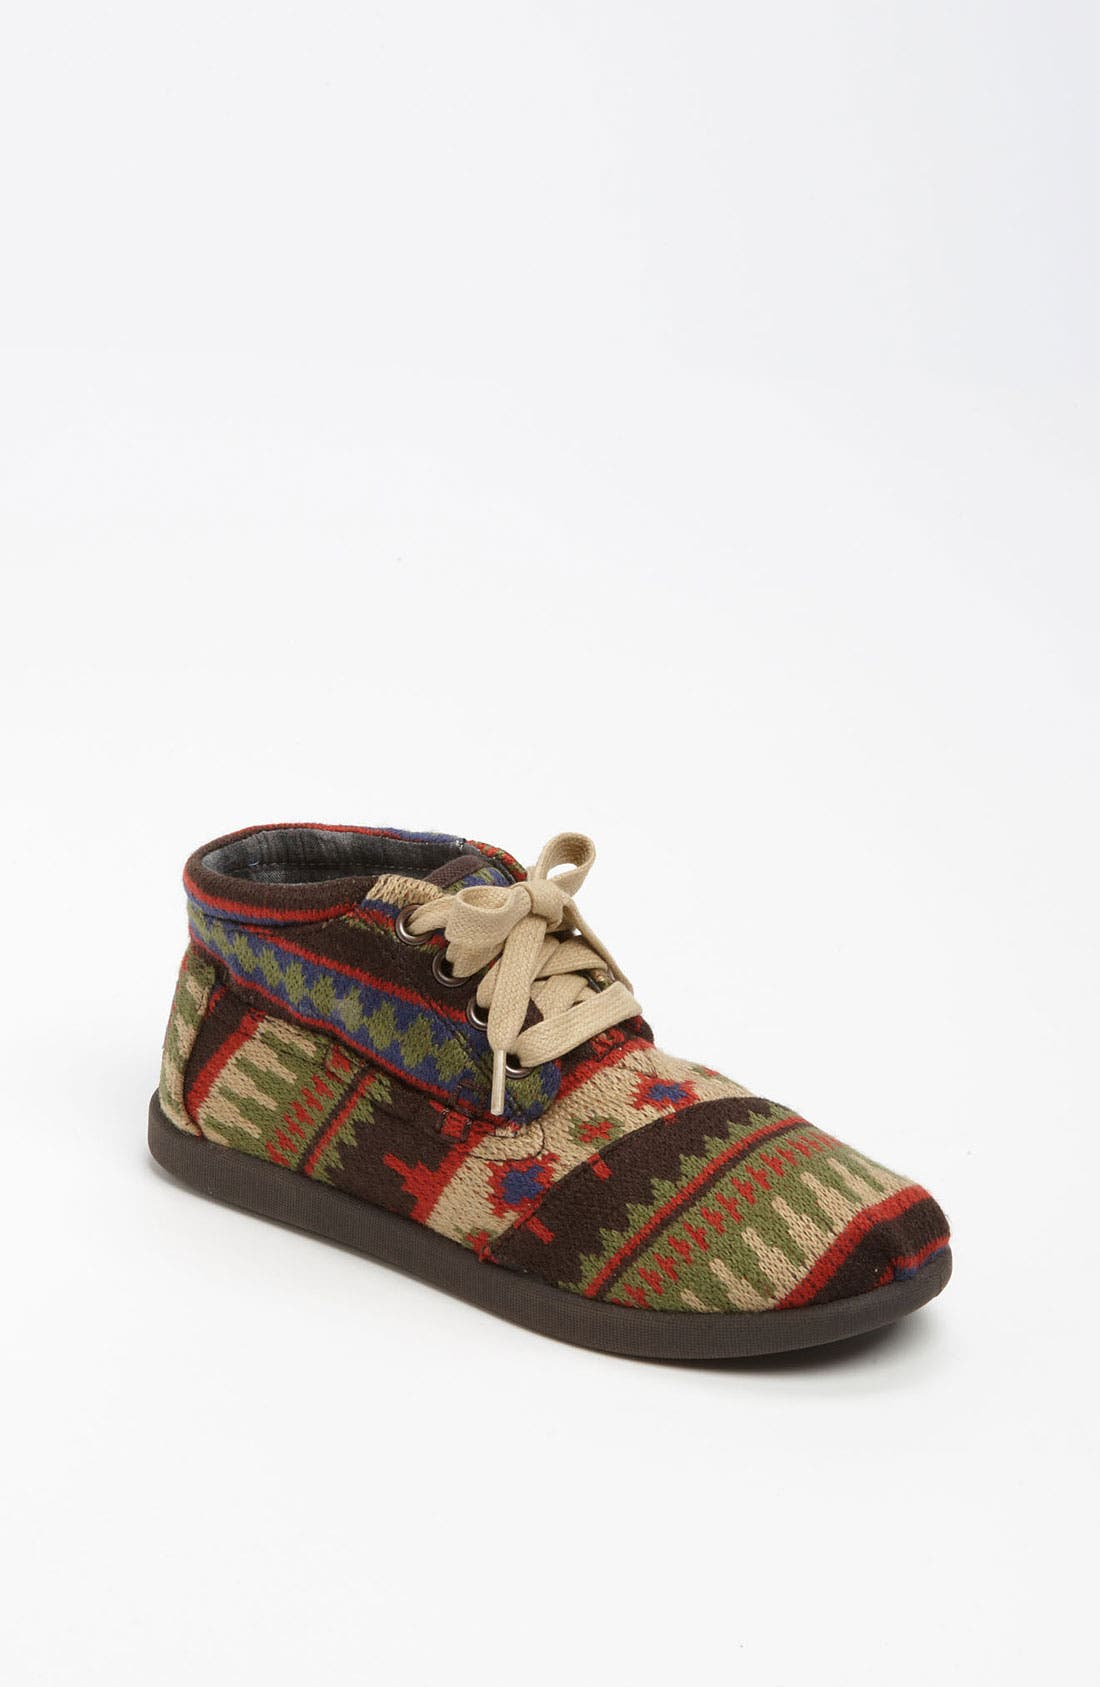 Alternate Image 1 Selected - TOMS 'Botas Youth - Kilim' Boot (Toddler, Little Kid & Big Kid)